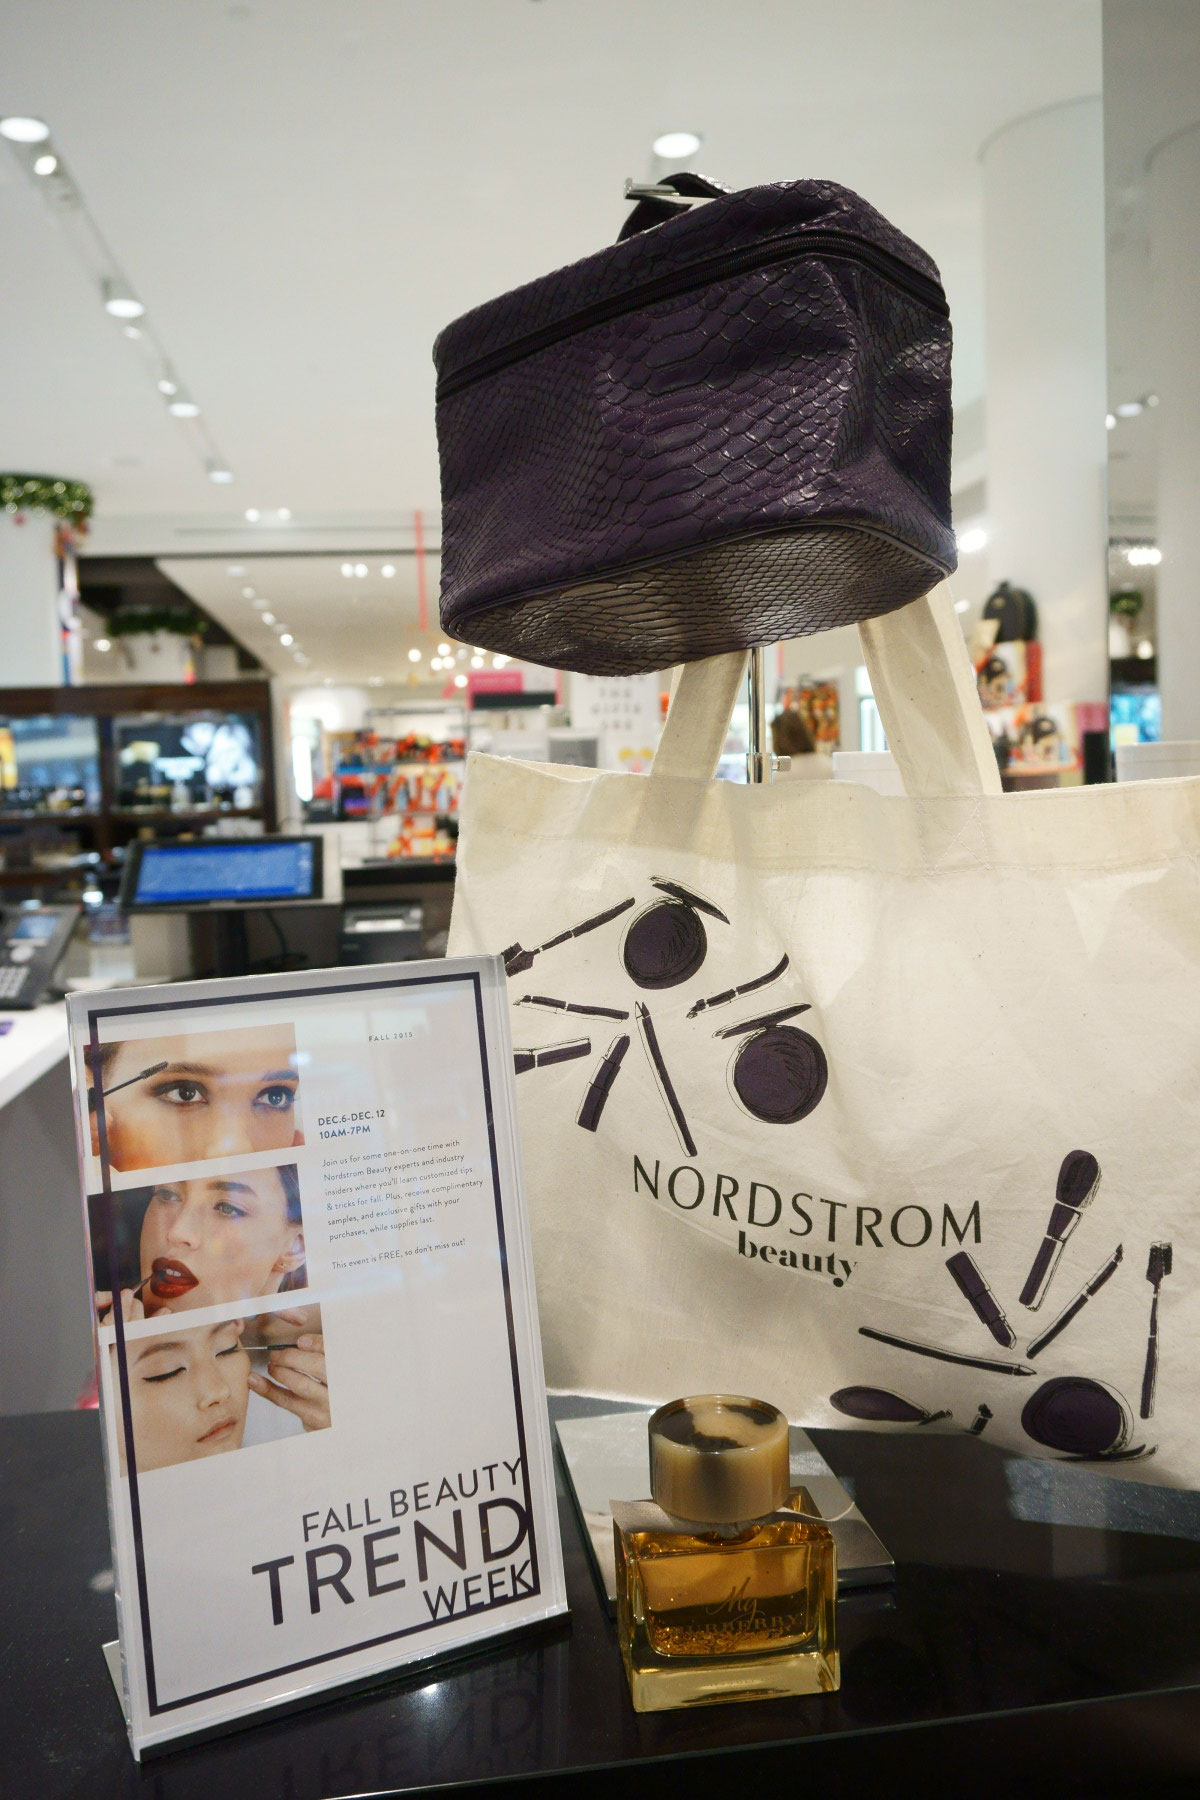 Nordstrom Beauty Trend Show Seattle 2015 Gift with Purchase // hellorigby.com seattle beauty blog